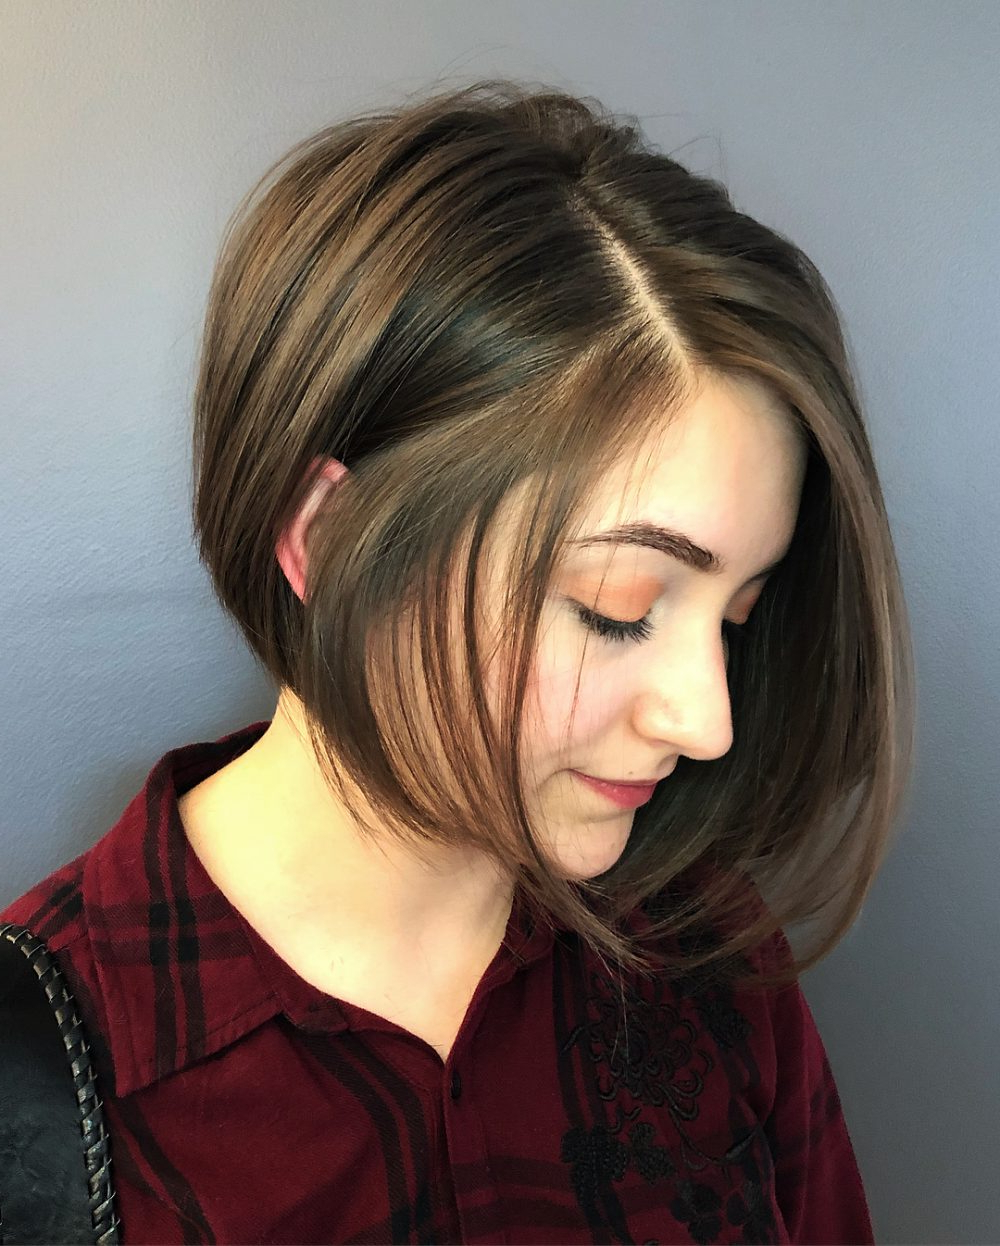 33 Flattering Short Hairstyles For Round Faces In 2018 With Regard To Short Haircuts For Round Faces And Glasses (View 8 of 25)